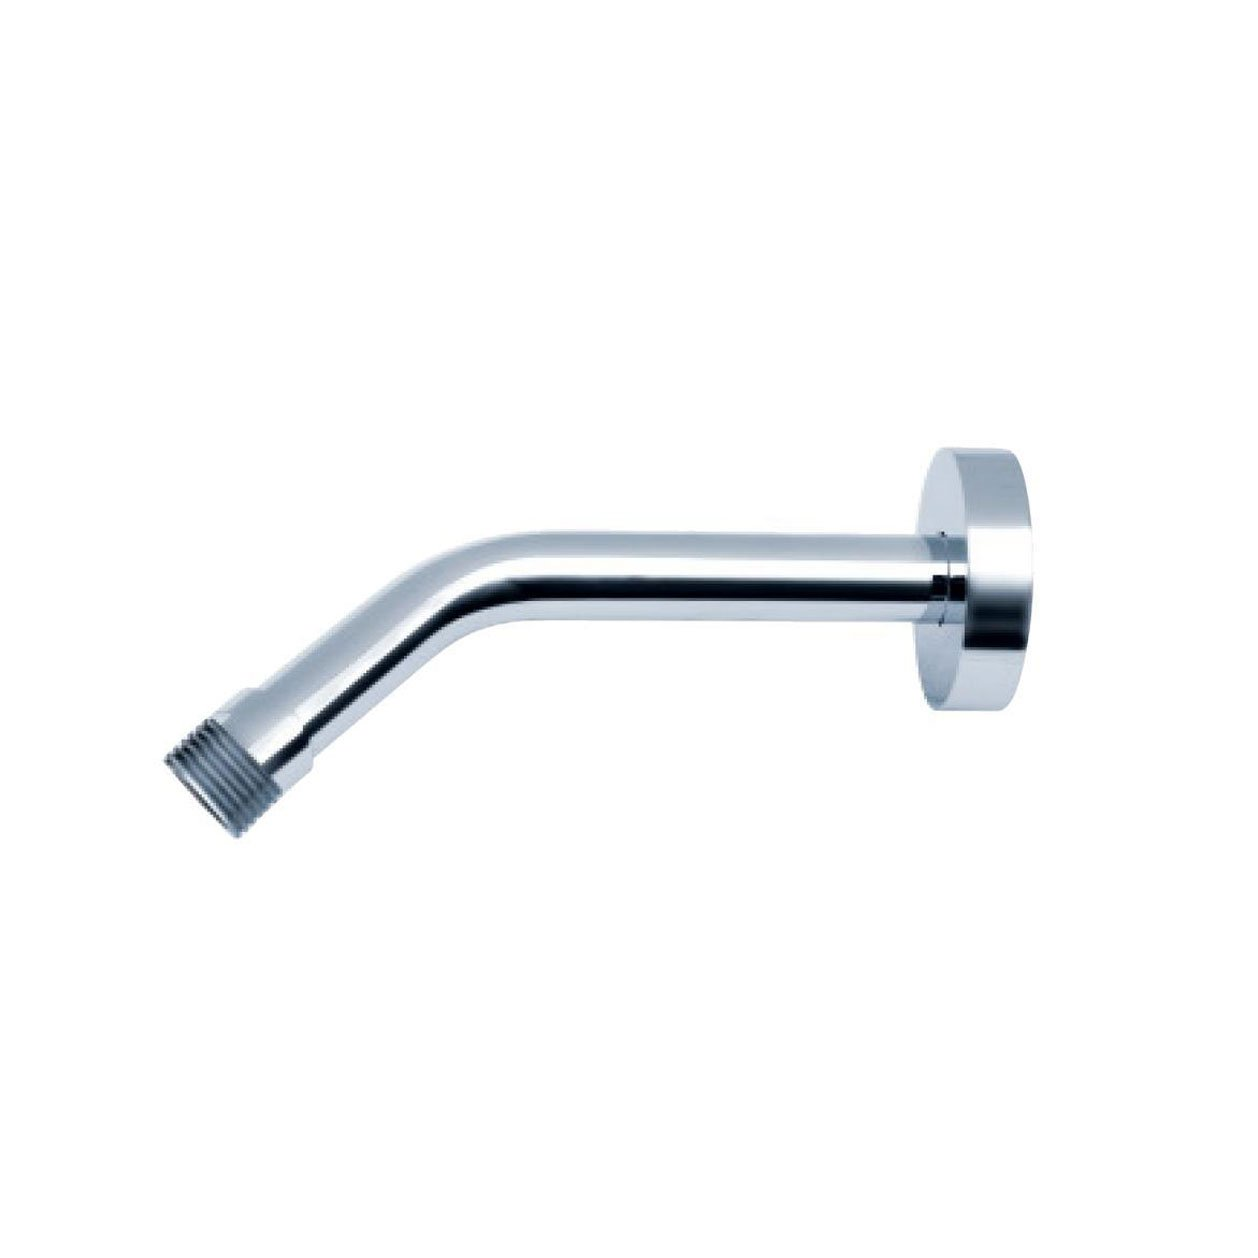 Fluid Faucets Fp6016008bn Wall Mounted 8 Inch Shower Arm